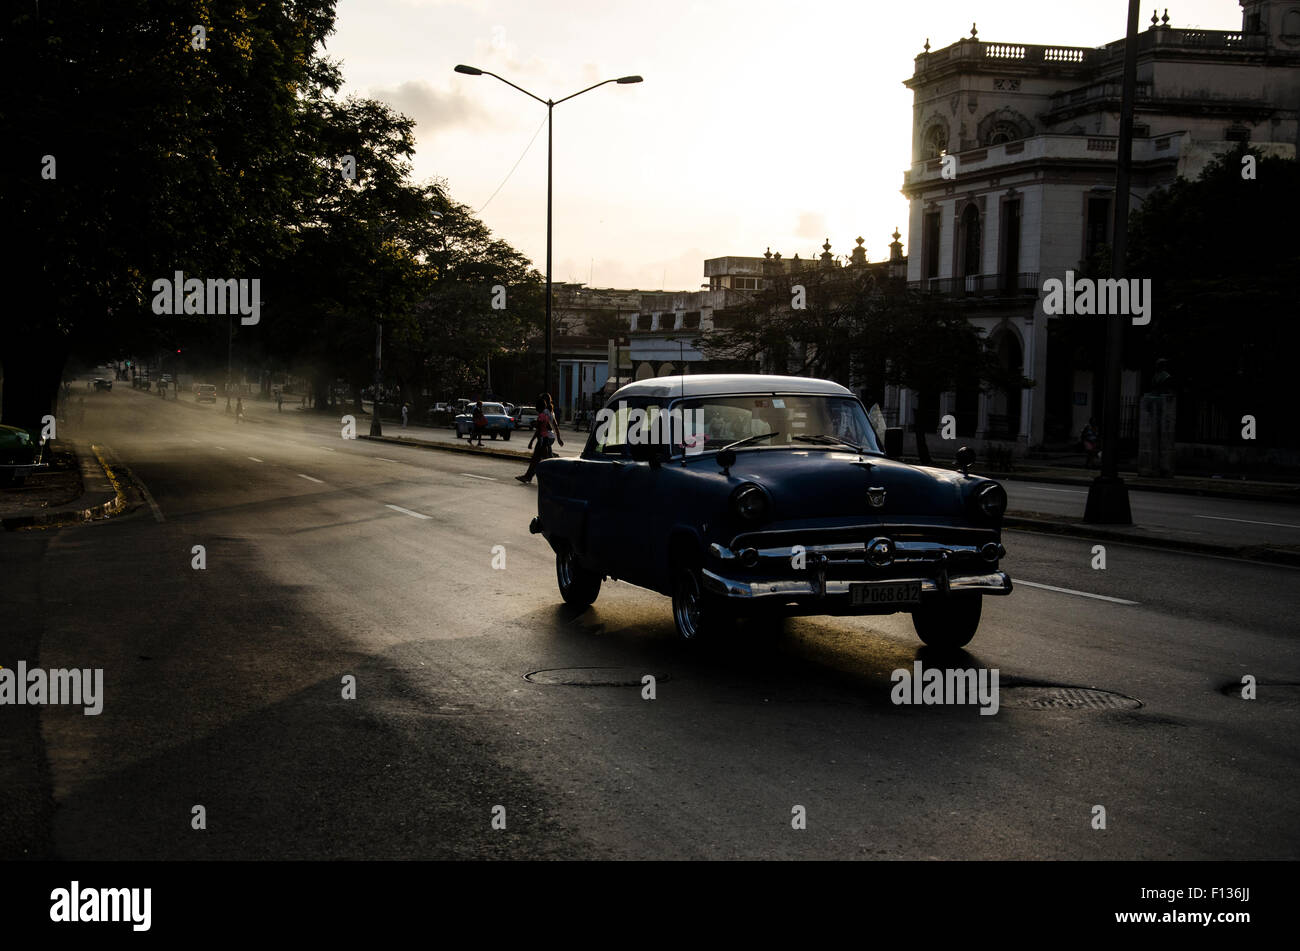 A vintage car speeding up in the evening of central havana, Cuba - Stock Image